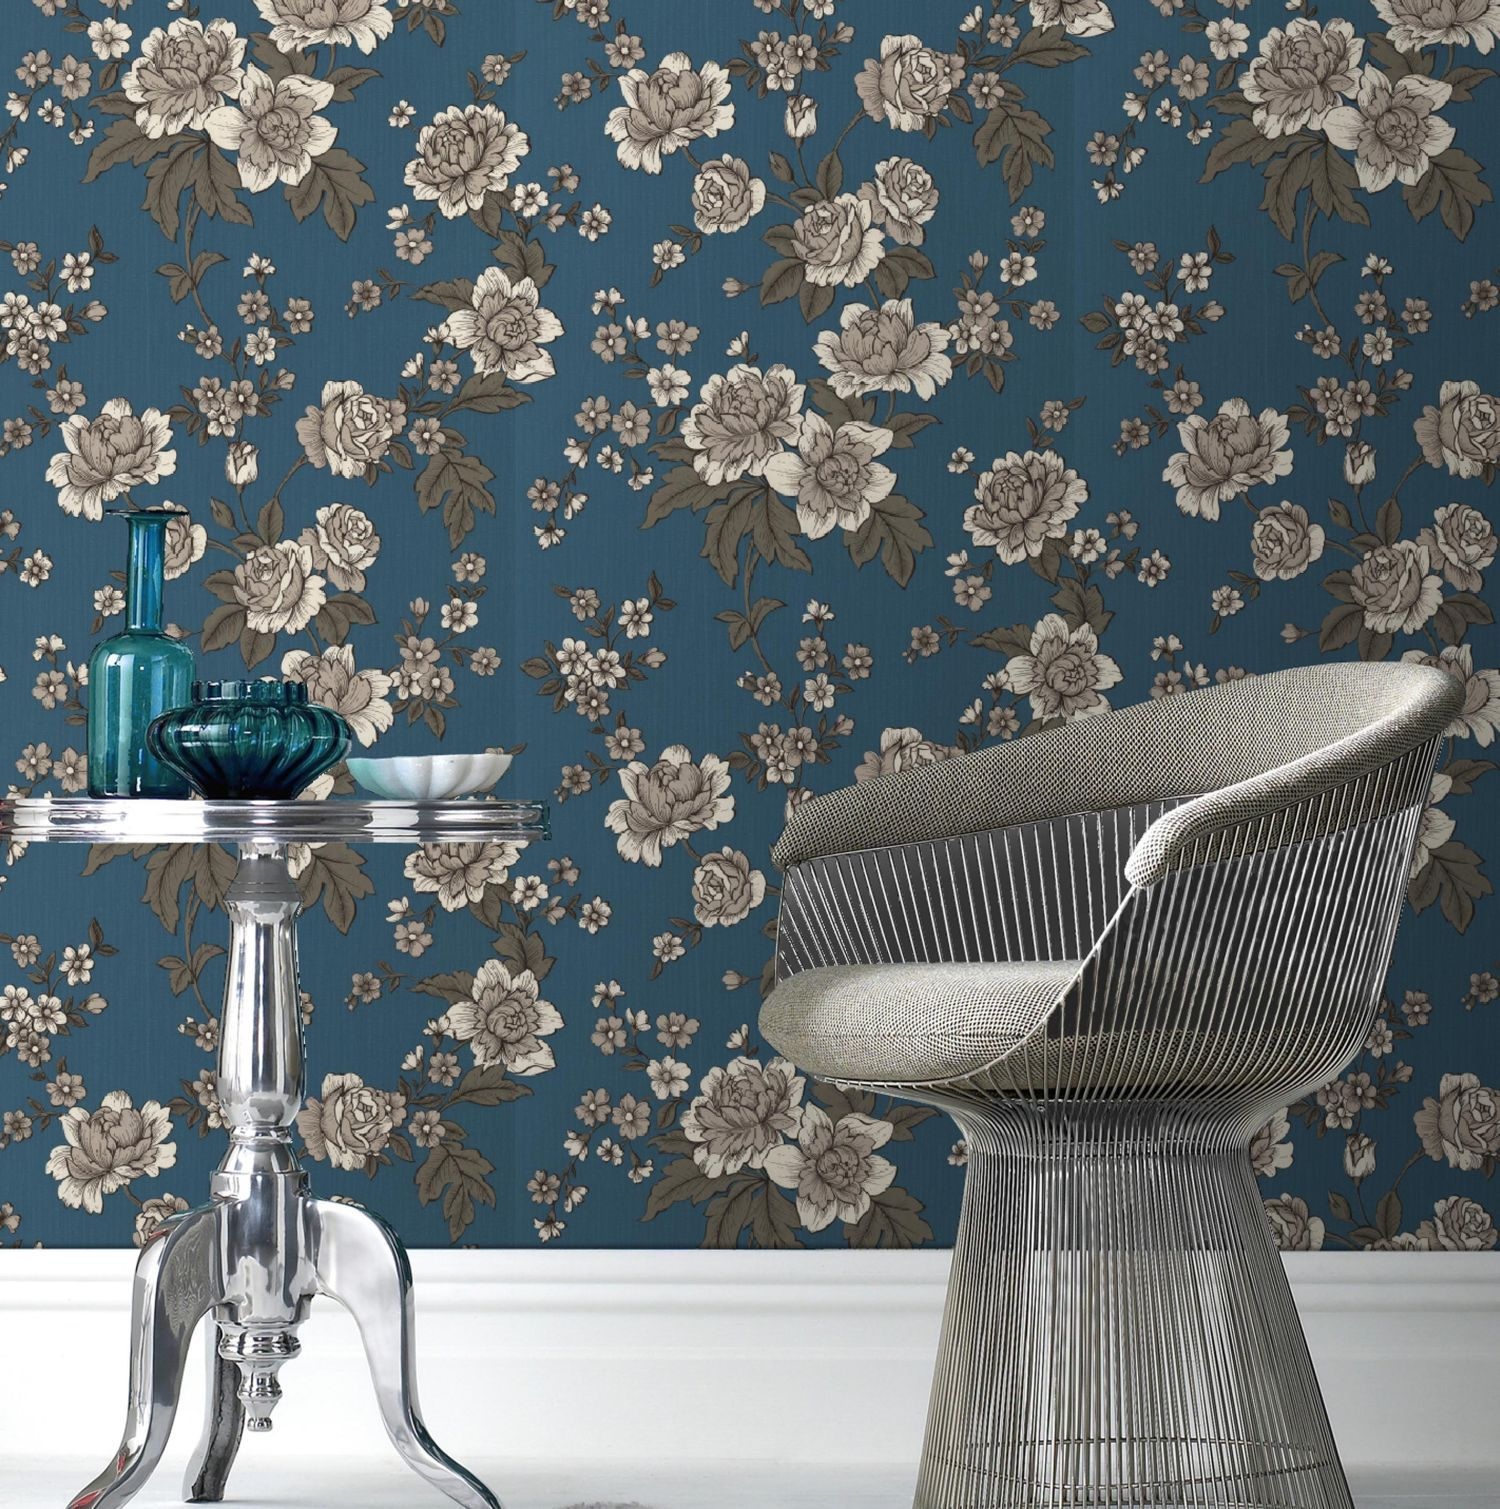 Teal kensington wallpaper